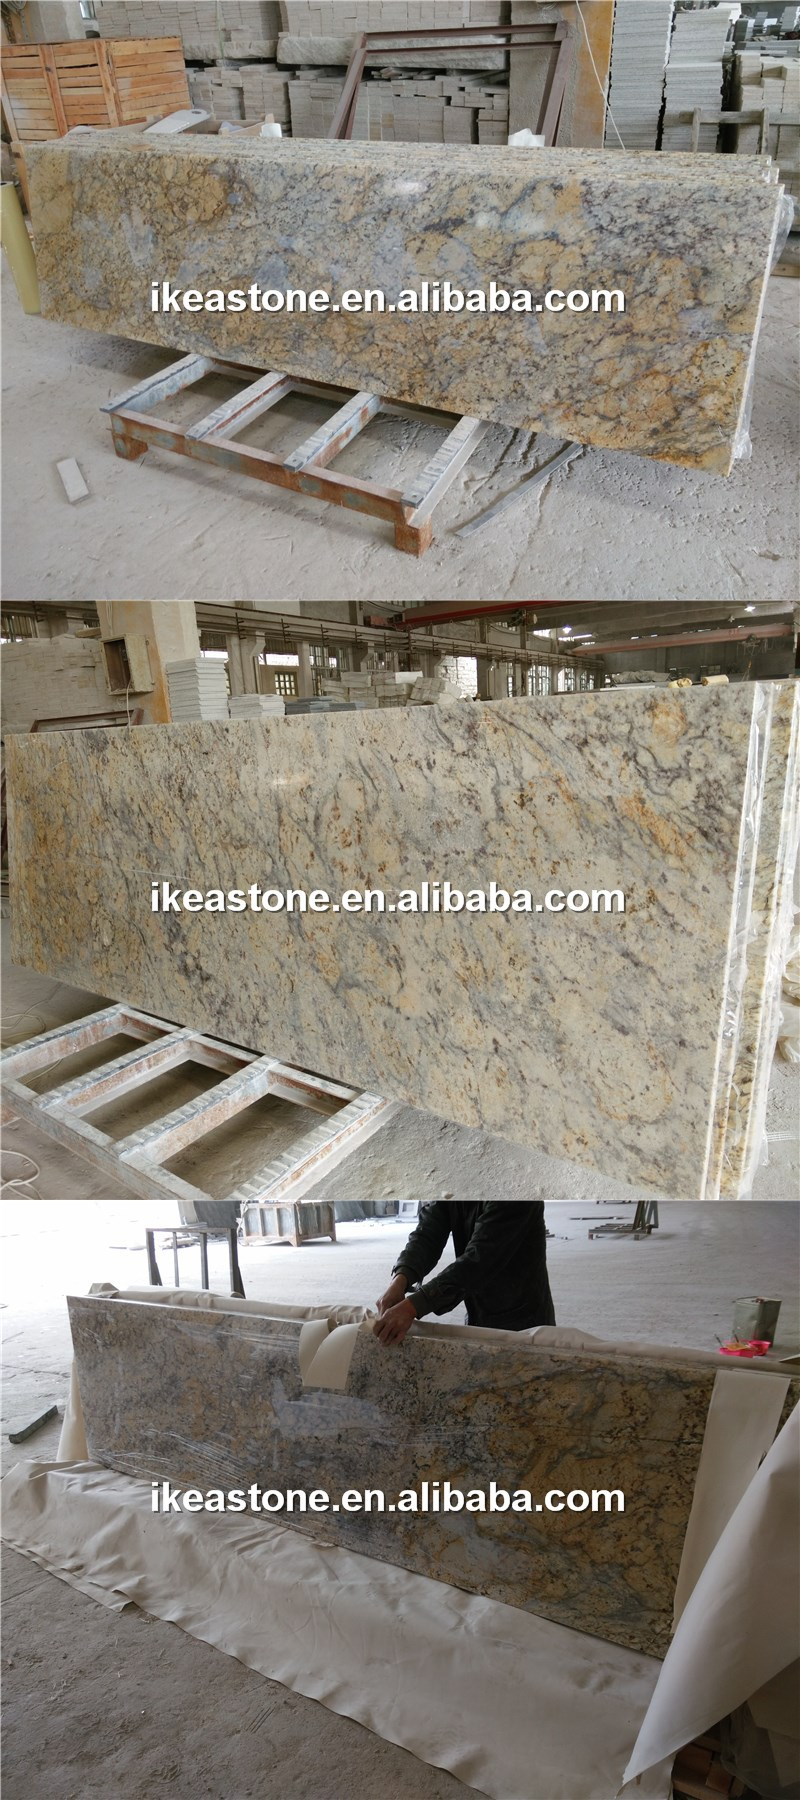 Pre Cut Granite Countertops For Sale - Buy Pre Cut Granite Countertops ...